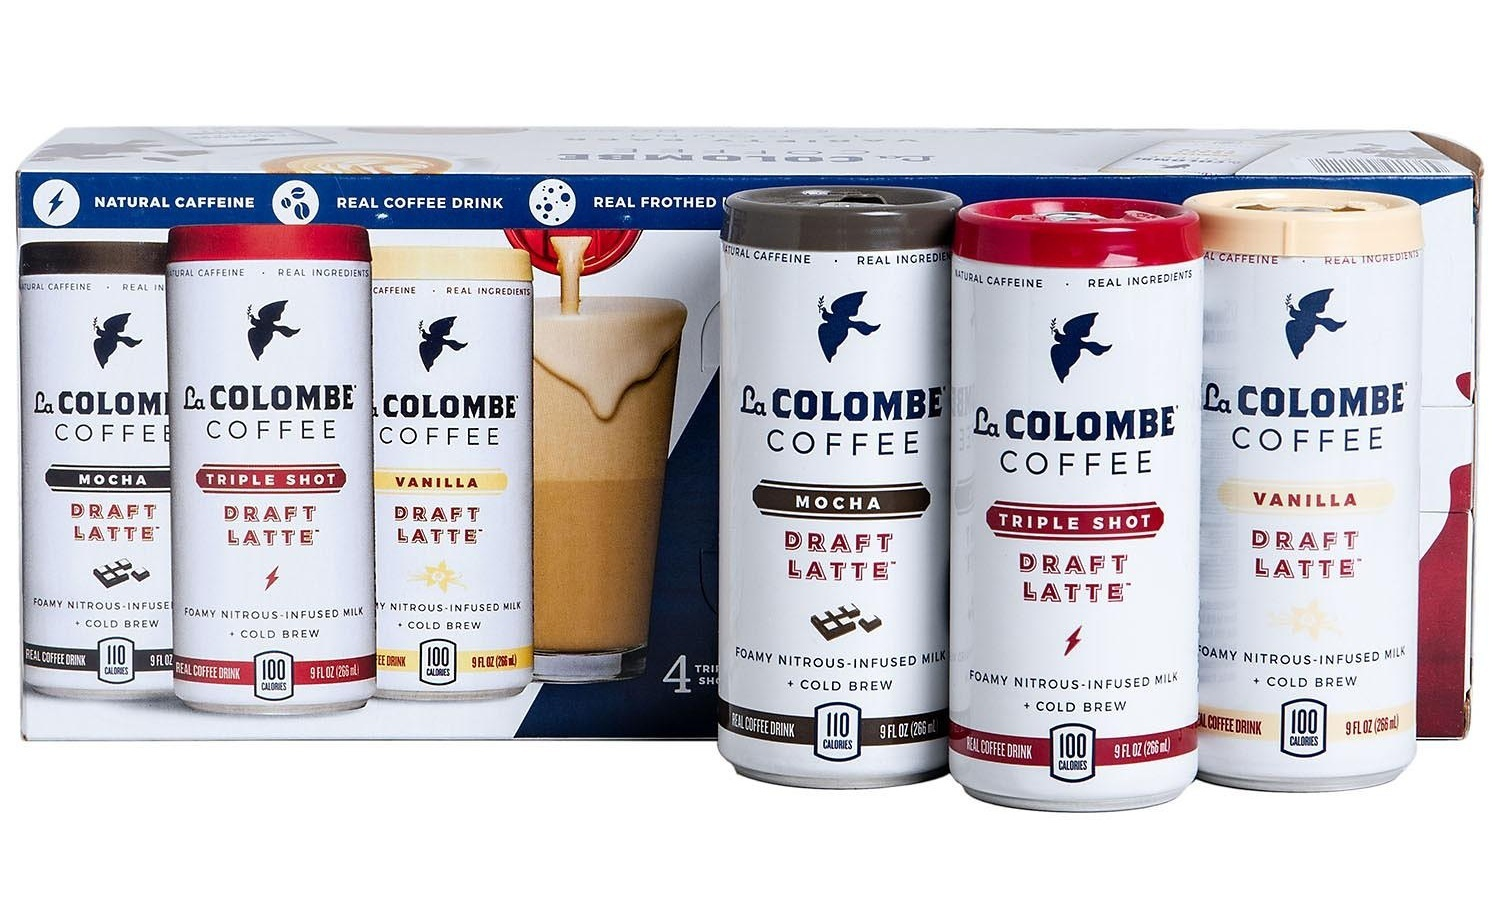 This crazy summer heat has definitely put a damper on our typical hot cup of morning coffee! Thank goodness for the  La Colombe  draft lattes. These little cans are loaded with caffeine and so easy to drink on the go!